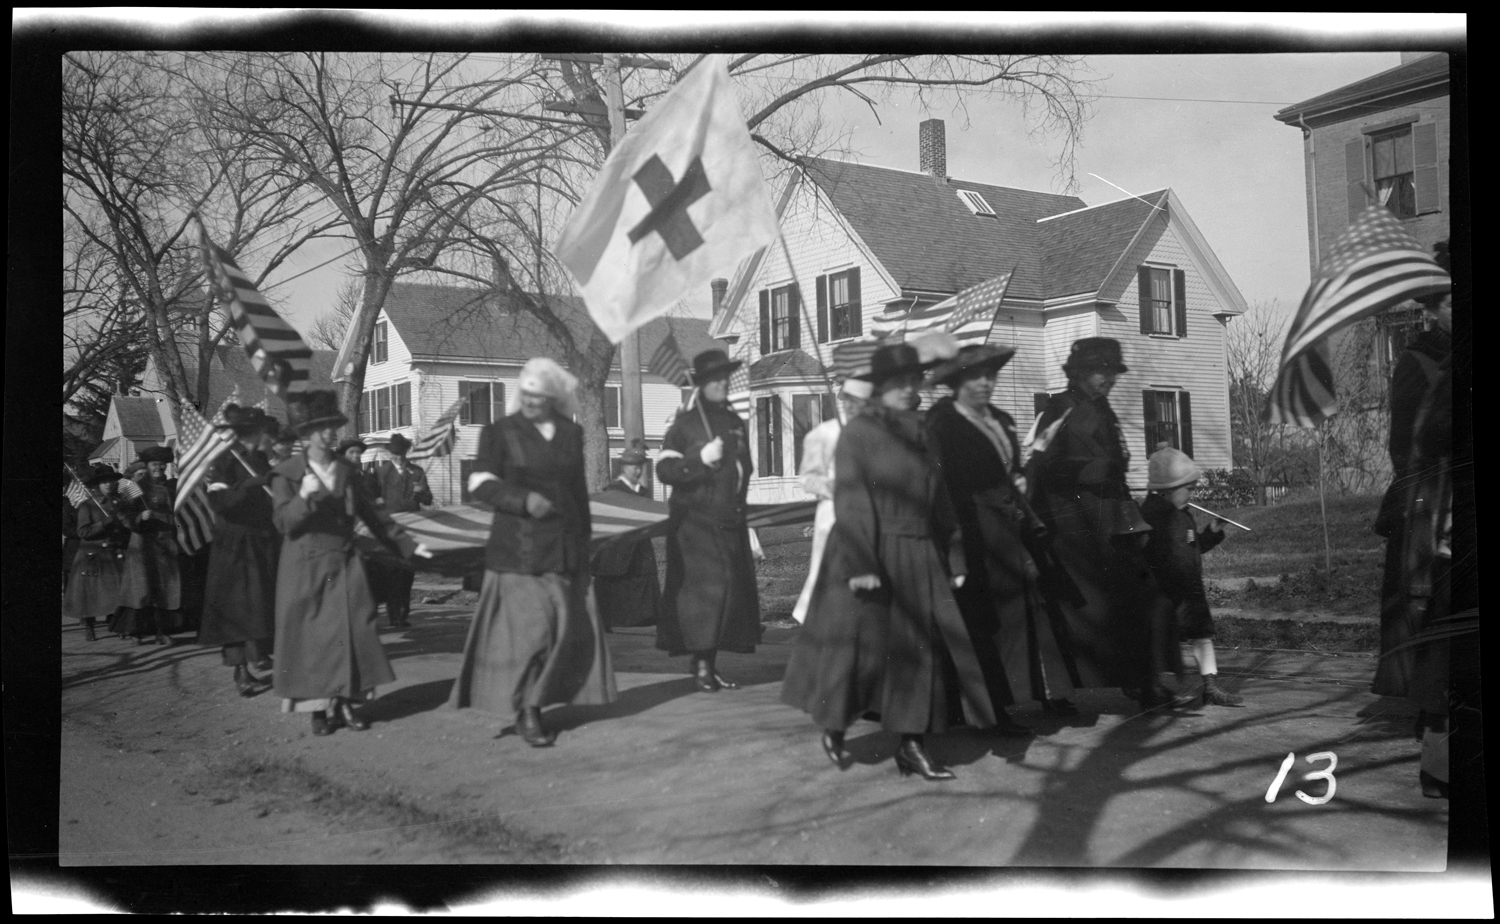 Marchers in the Welcome Home parade, October 18, 1919.